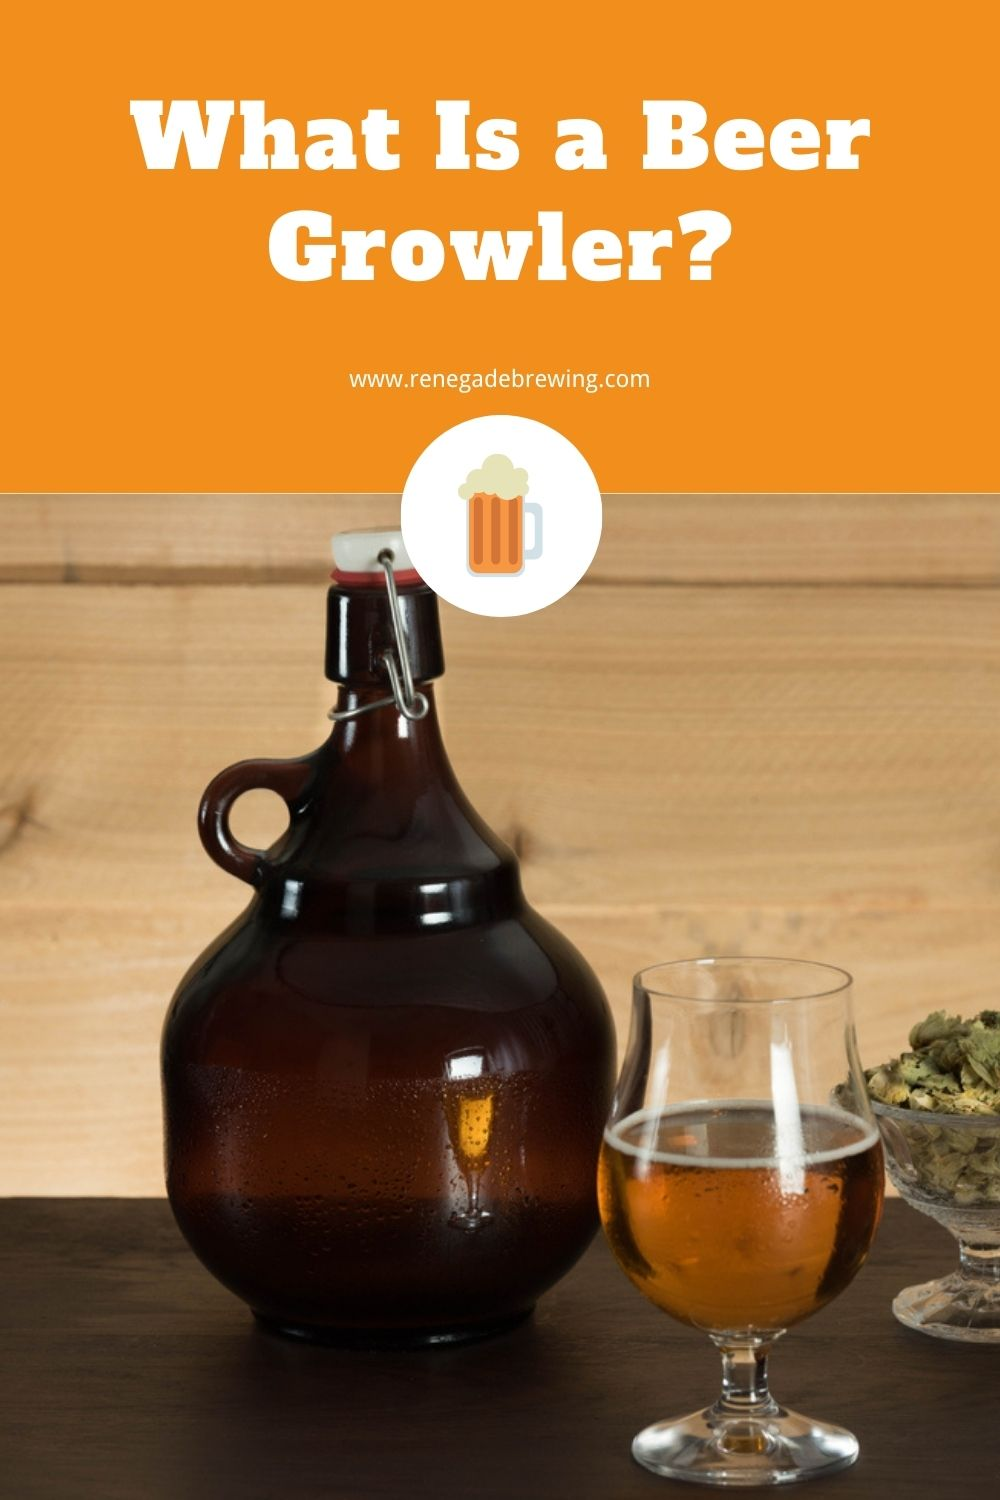 What Is a Beer Growler (History, Types & Size) 2